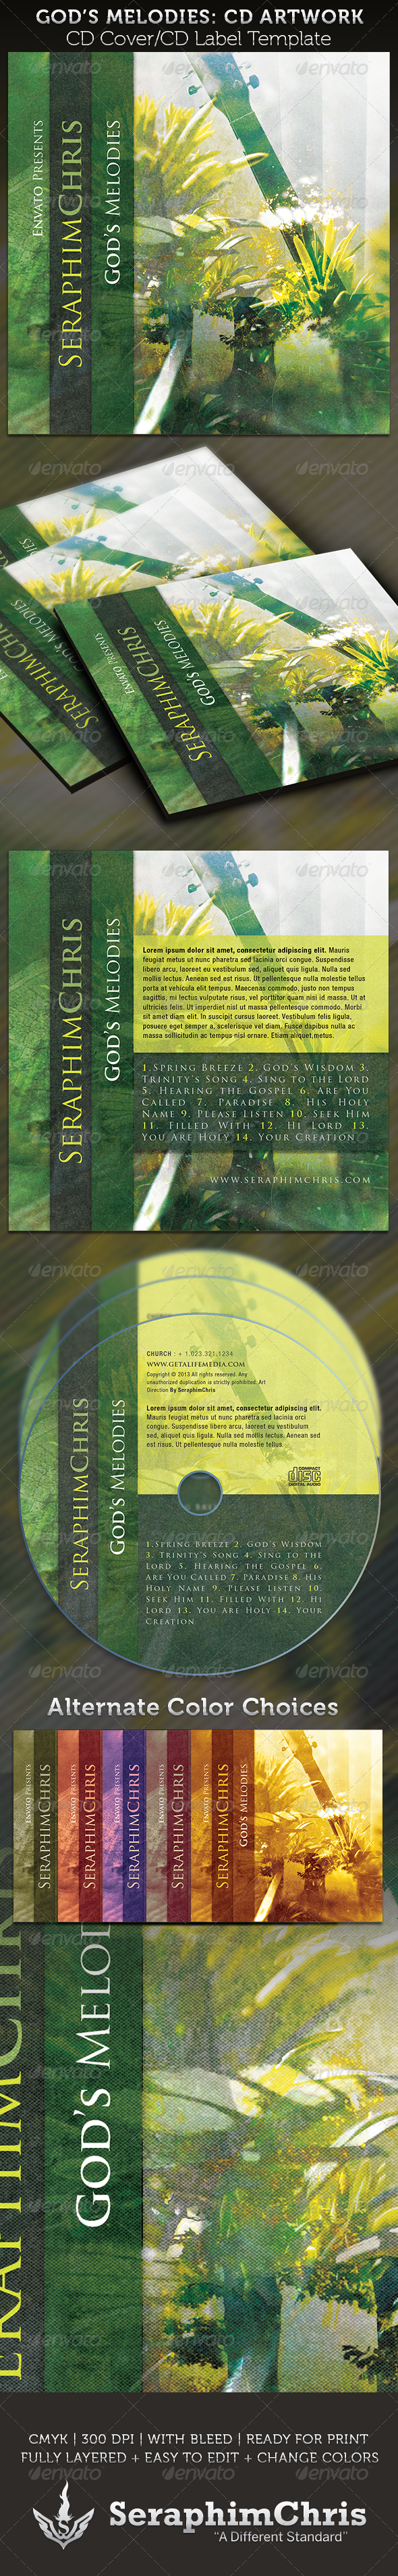 GraphicRiver God s Melodies CD Cover Artwork Template 3837545